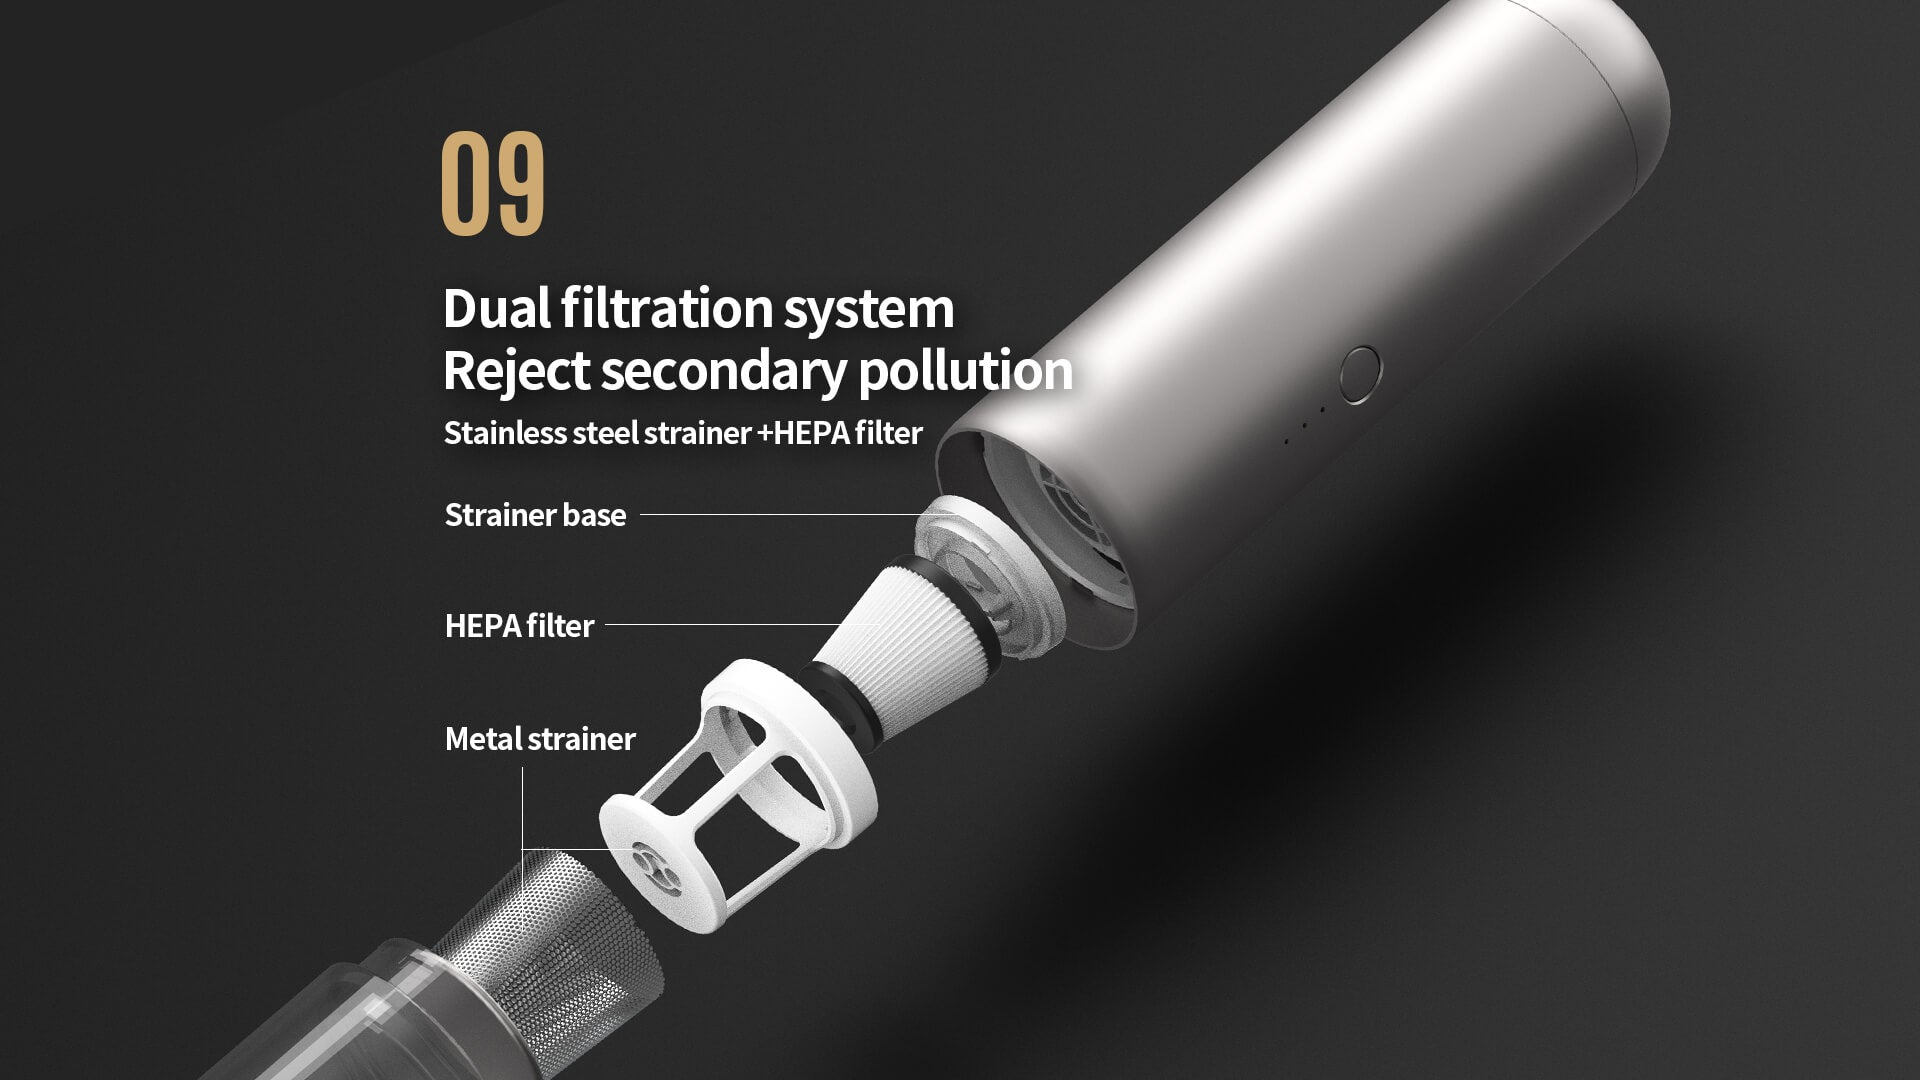 Beat Filter Design Filter Can Be Cleaned And Reused.  Not having to buy replacement filters.